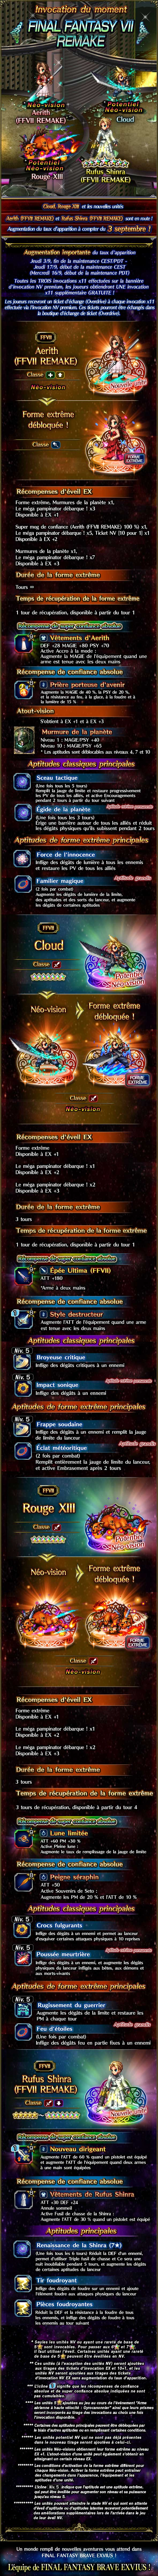 Invocations du moment, Nouvel arrivage VC et boutique d'échange - FFVII:R (NVAerith/Cloud/RougeXIII) - du 03/09 au 17/09/20 20200901FFVIIRAerithFeaturedSummonv2